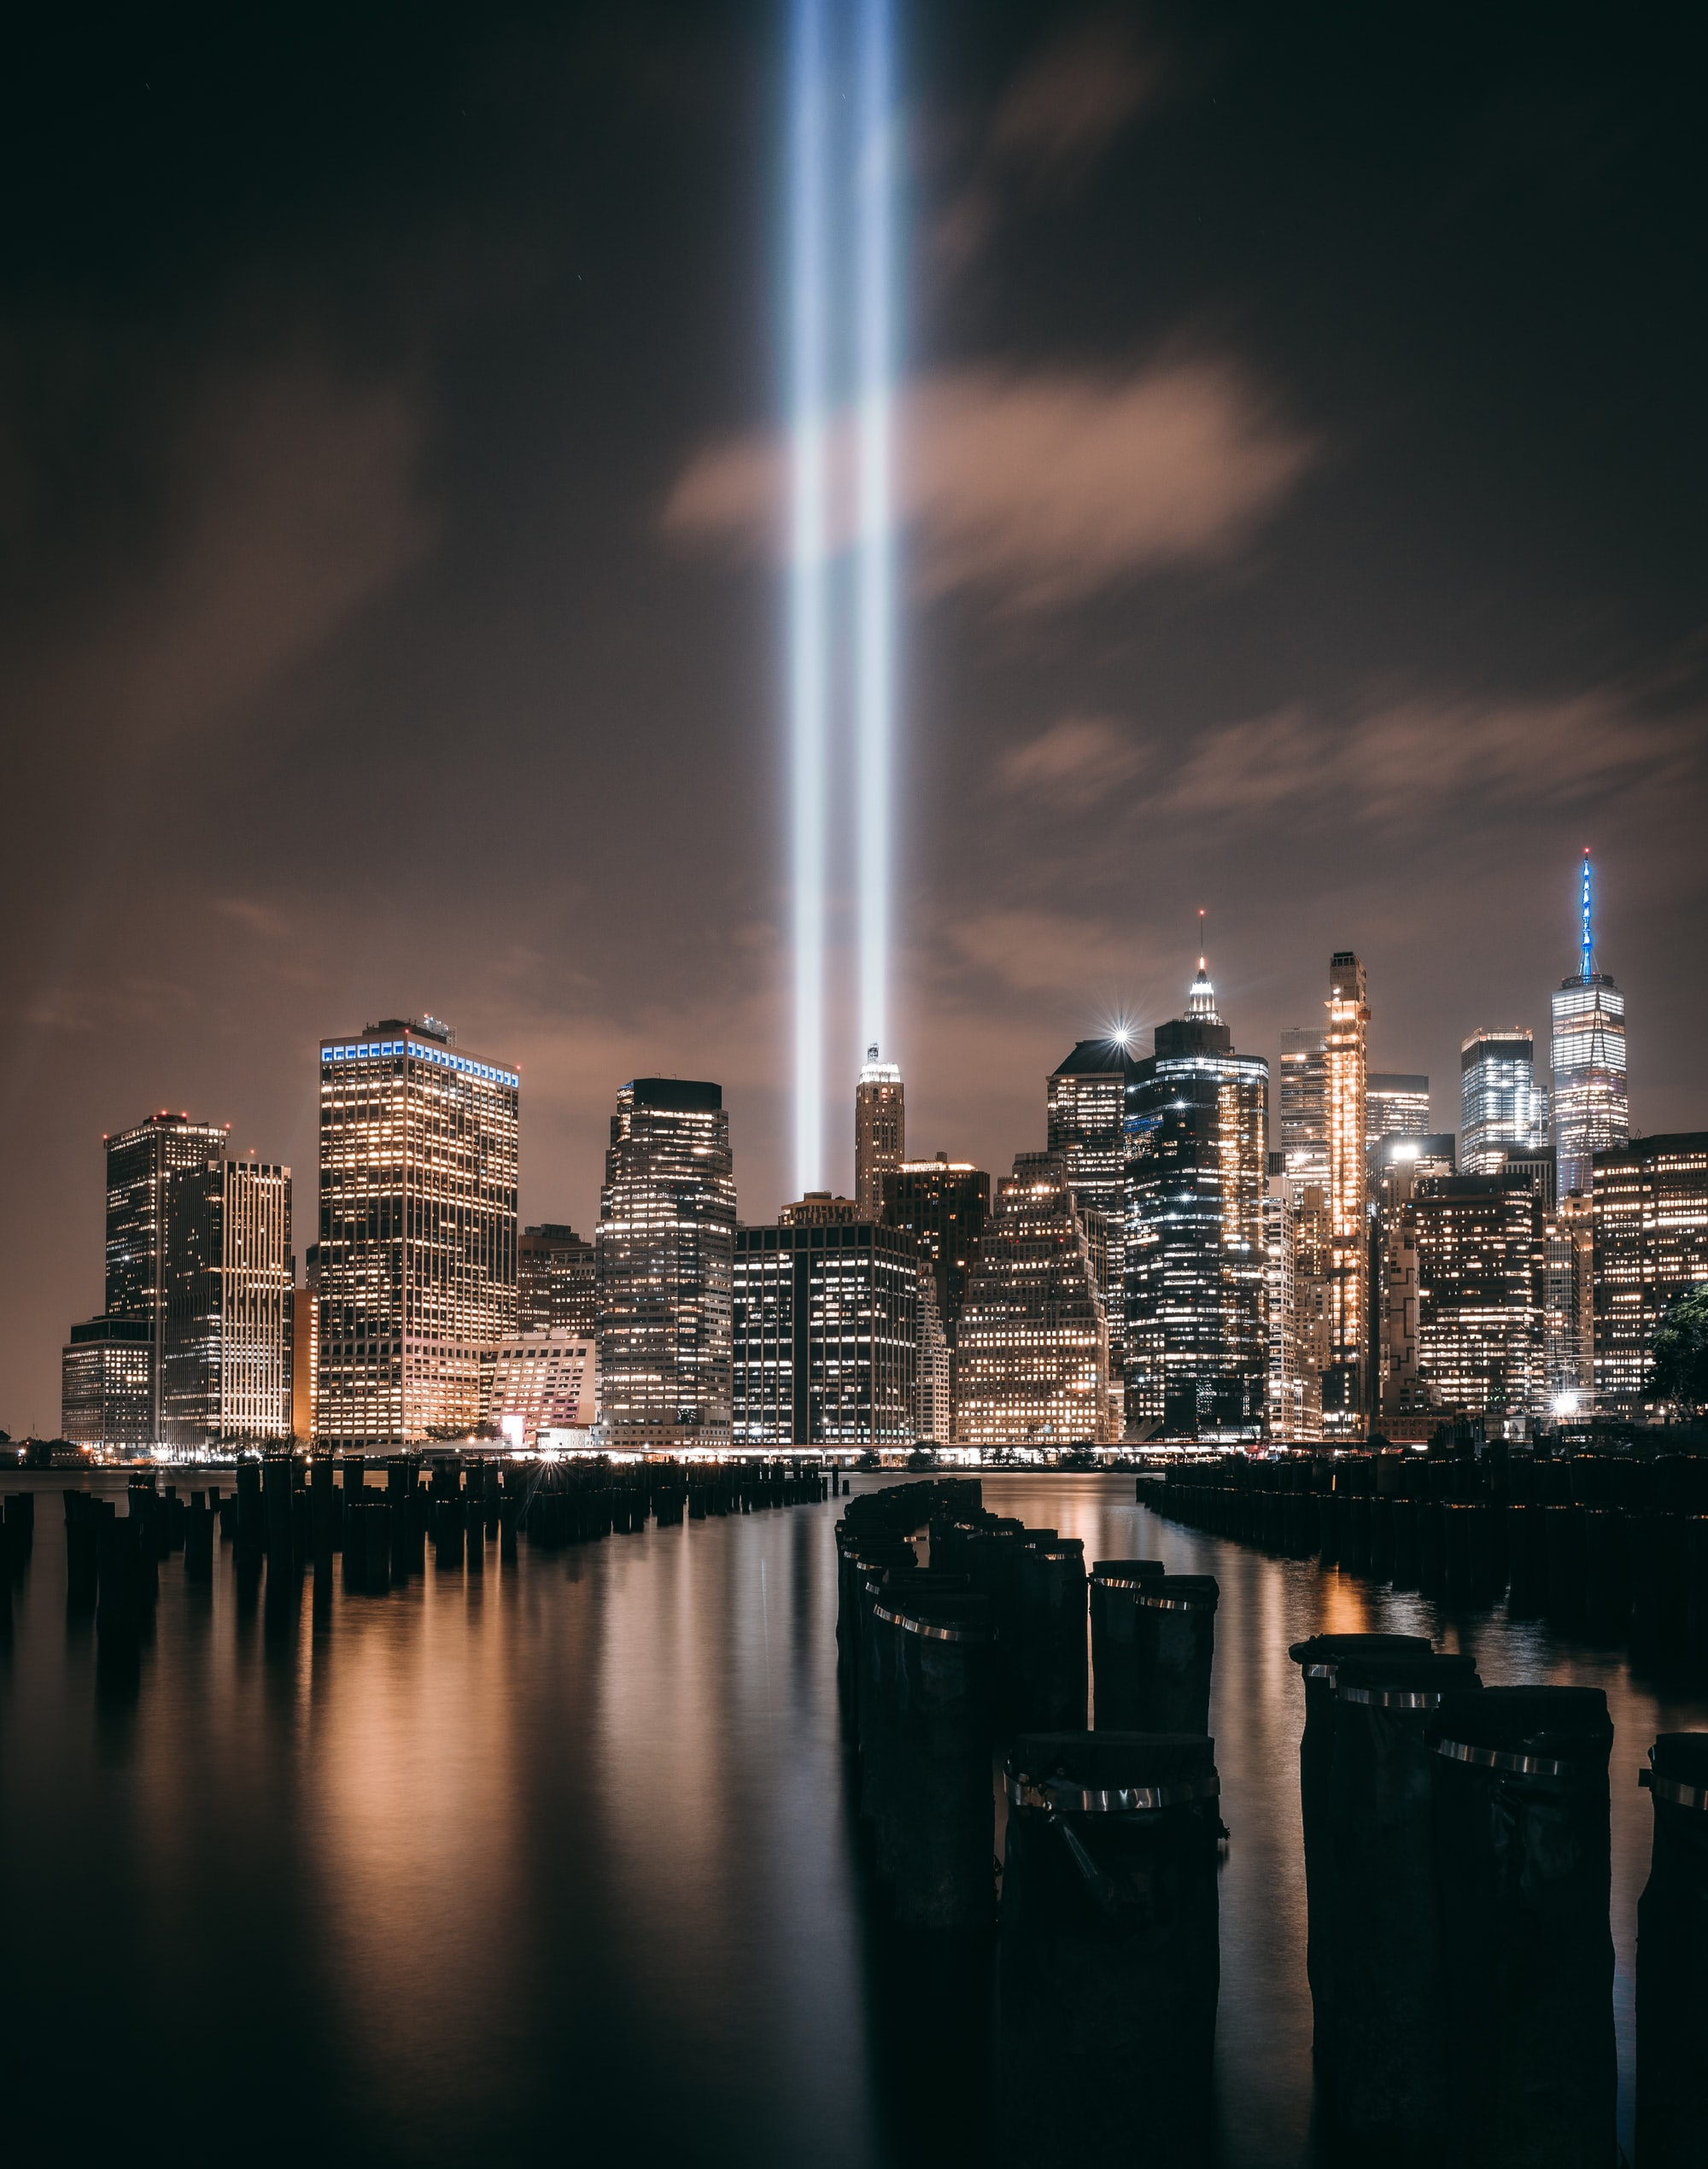 Numerology of 9/11